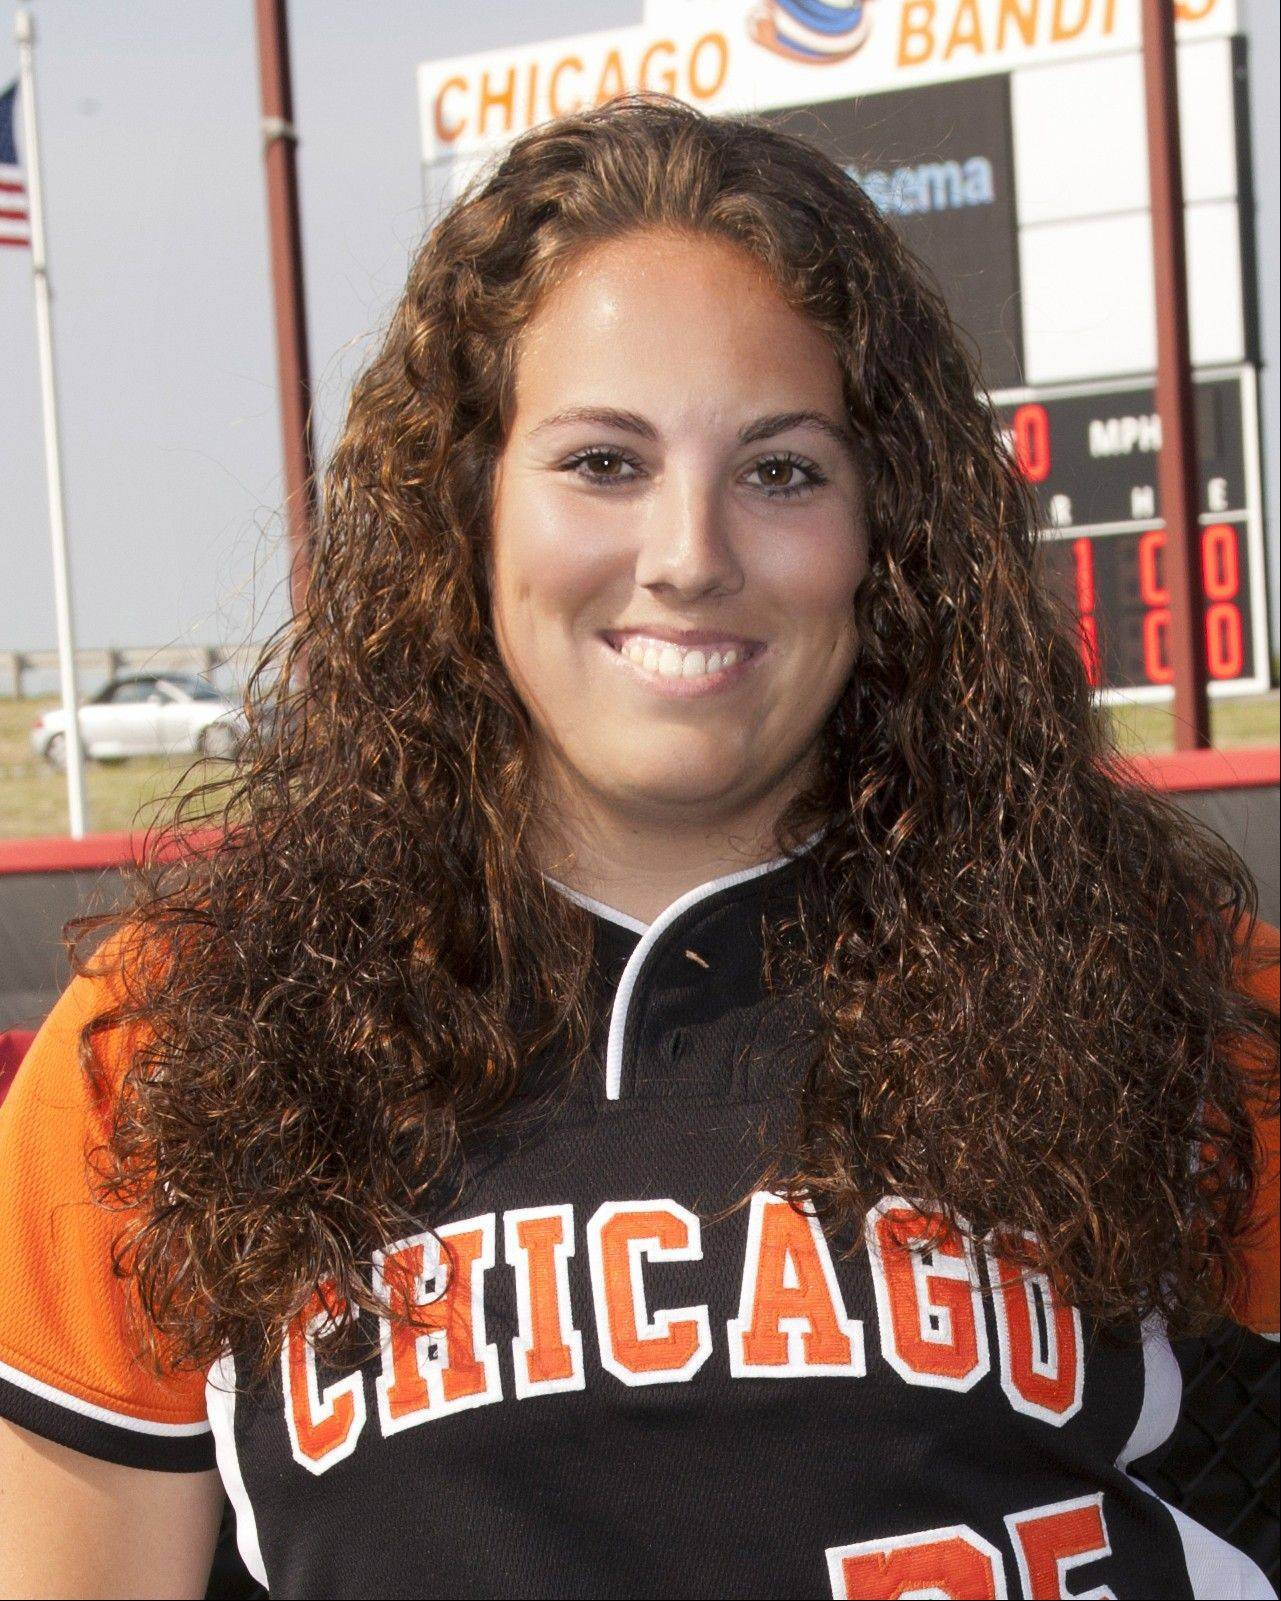 Alisa Goler of the Bandits earned Rookie of the Year honors in the NPF.